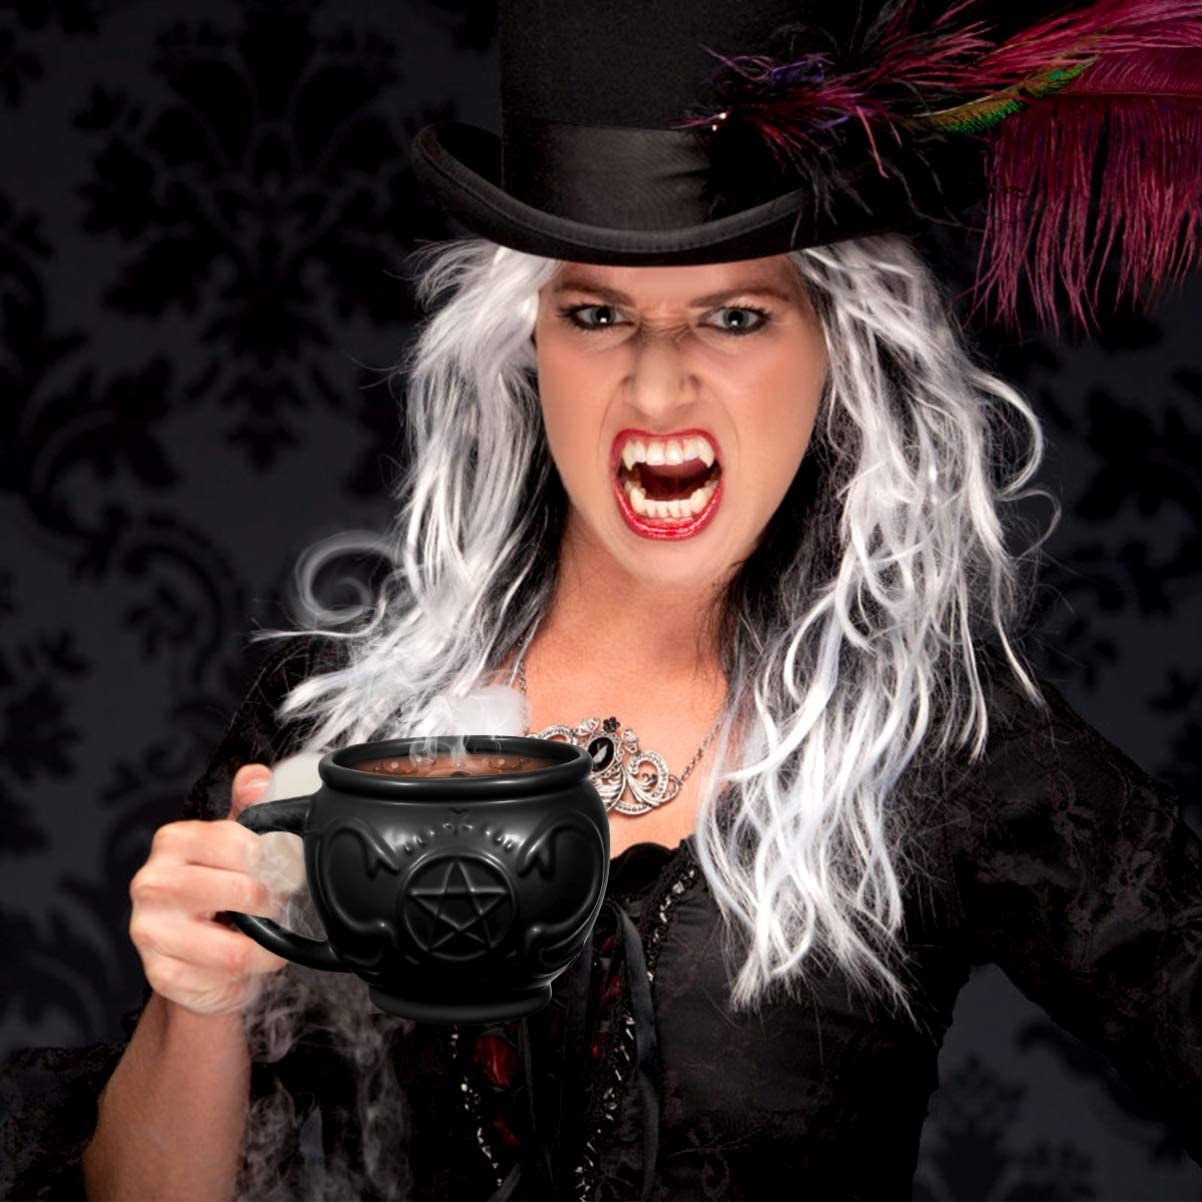 Witch Cauldron Mug Gothic Tea Cup Porcelain Witch Coffee Mug Witchcraft Supplies Novelty Halloween Gifts